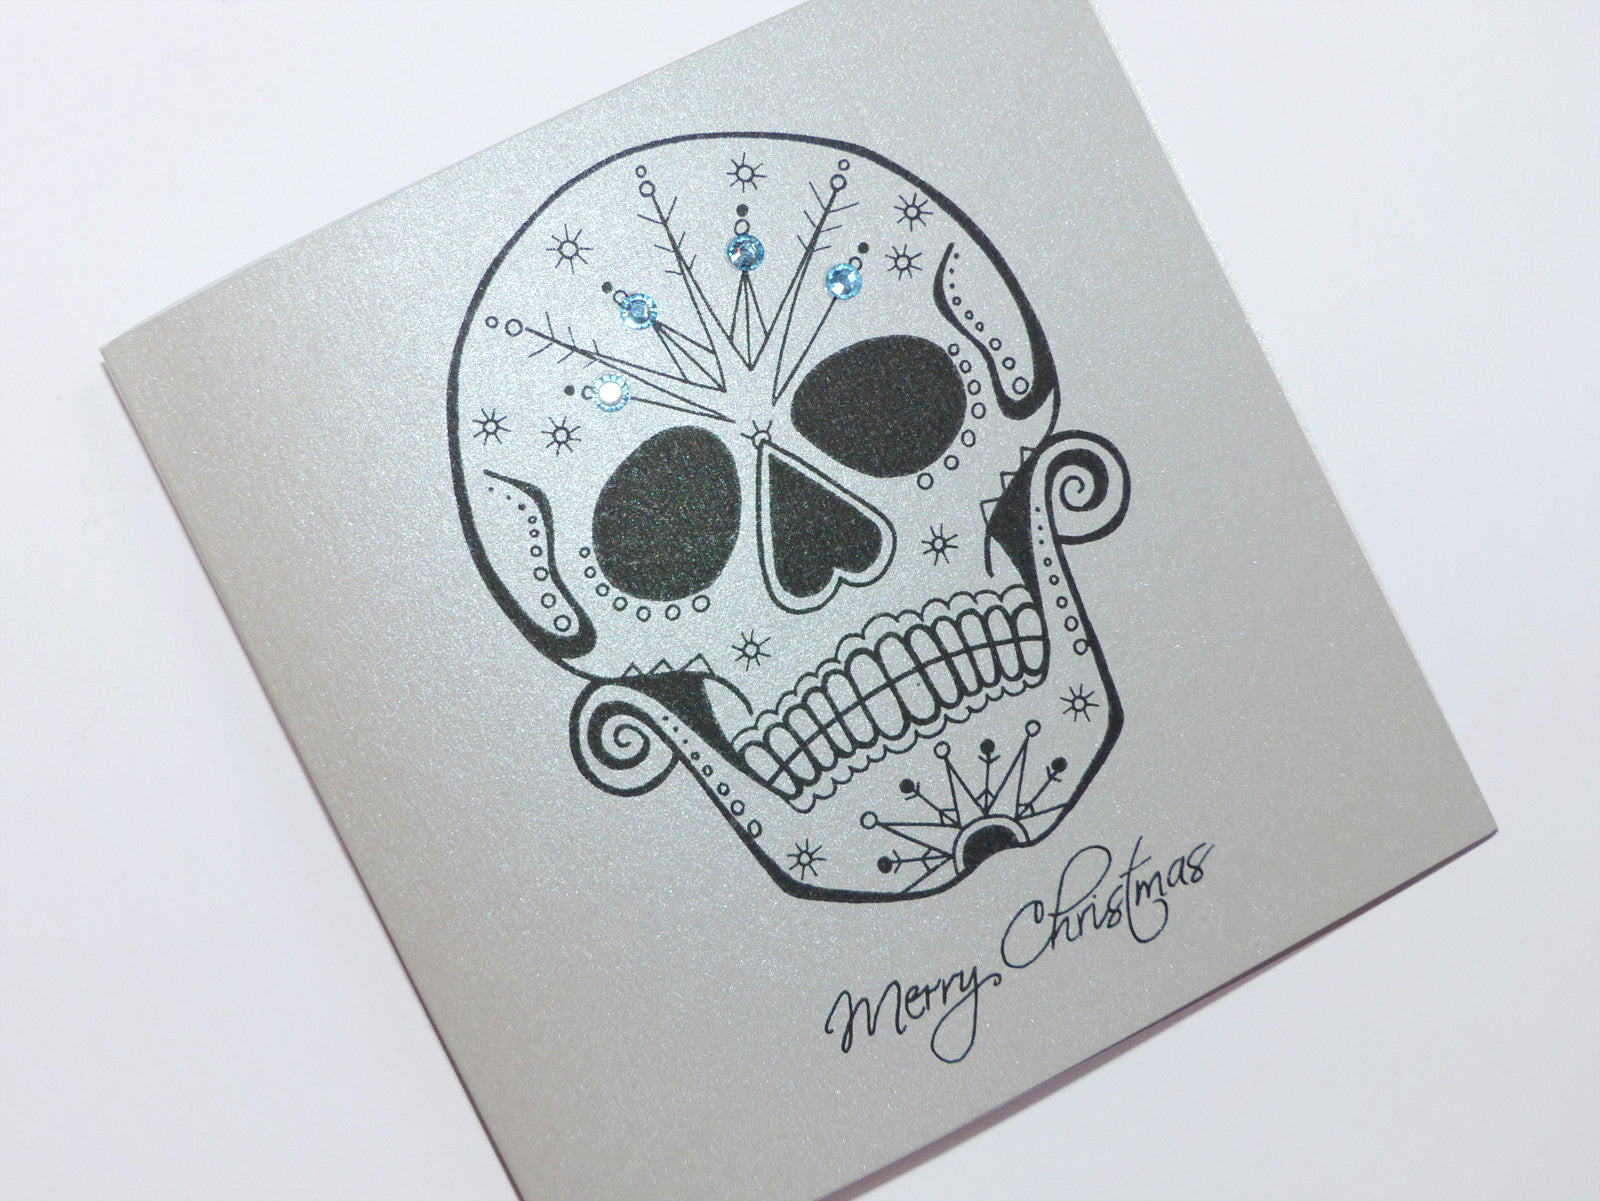 ccdcfeee31722 ... Frosted day of the dead sugar skull tattoo handmade christmas card